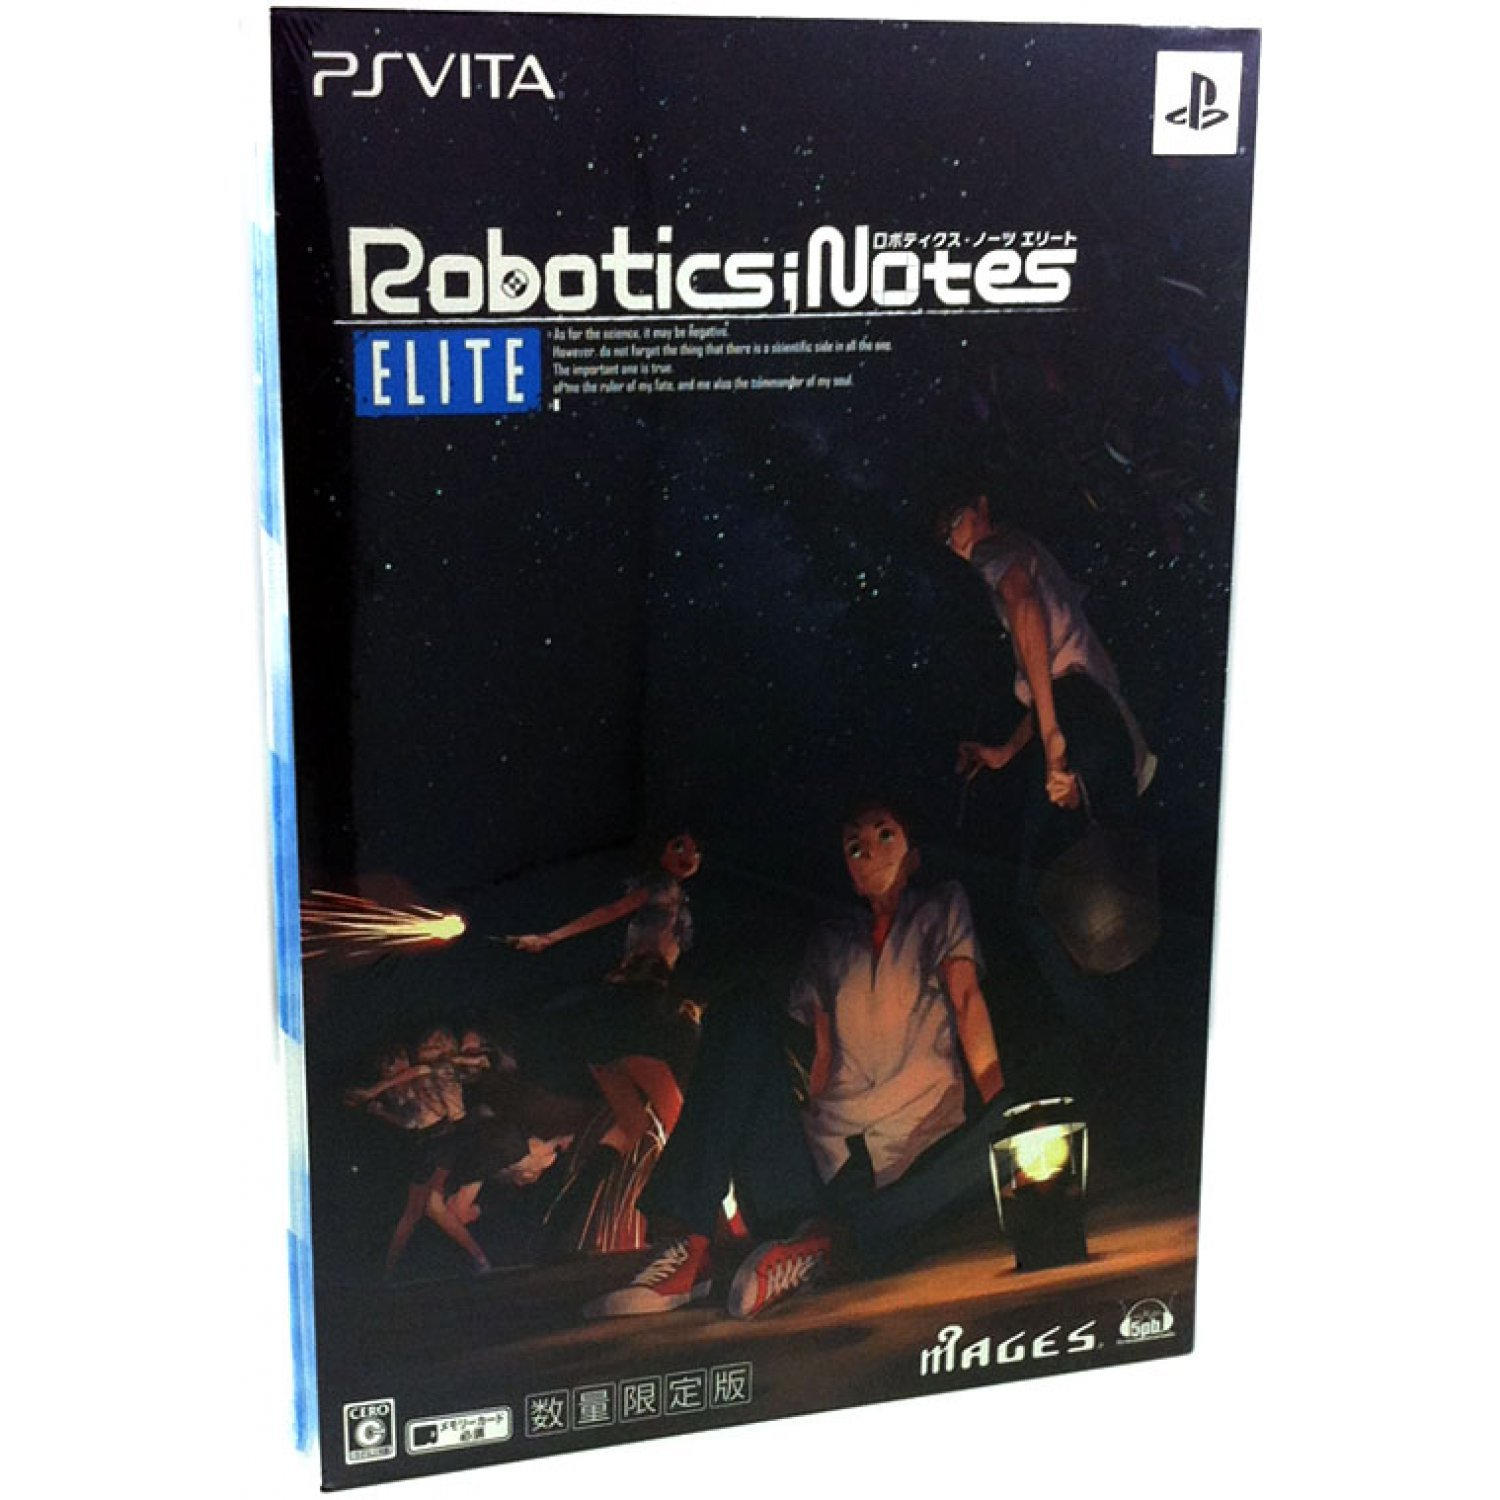 Robotics Notes Elite Limited Edition